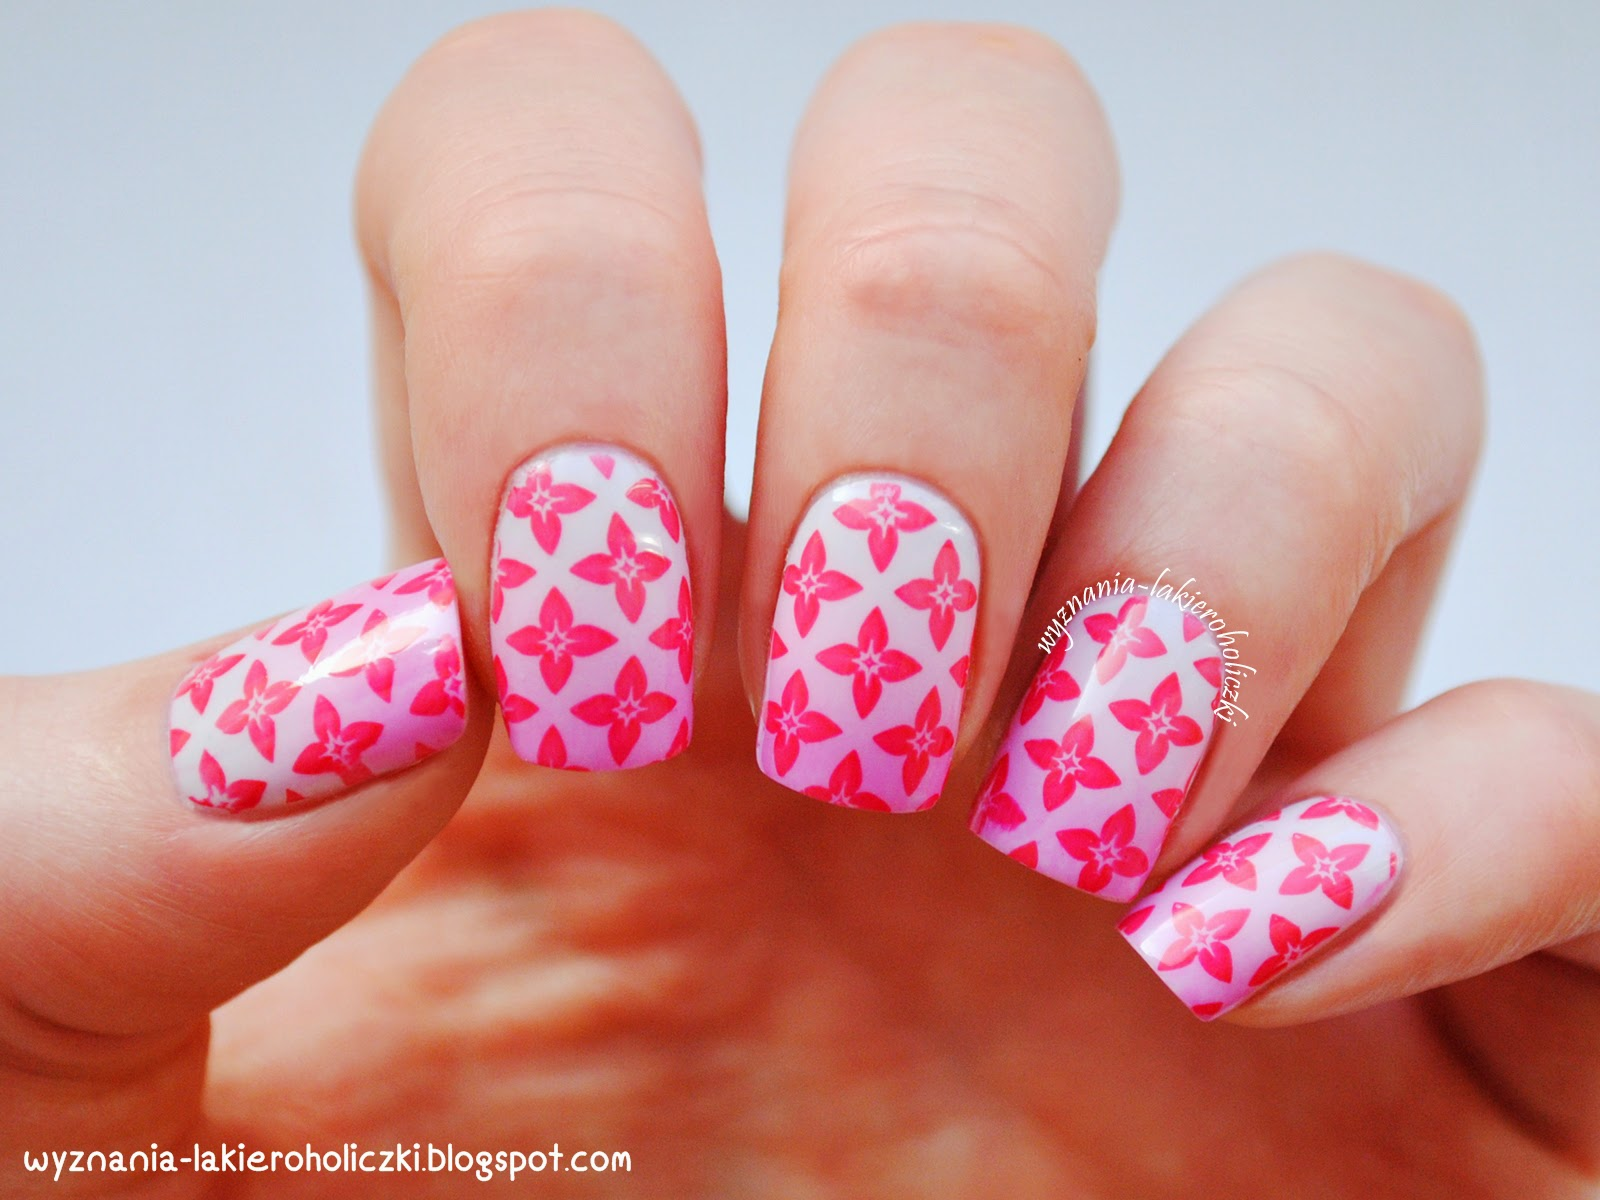 Most beautiful nails in the world hd wallpapers hd wallpapers - Most Beautiful Nail Art Designs Most Beautiful Nail Art